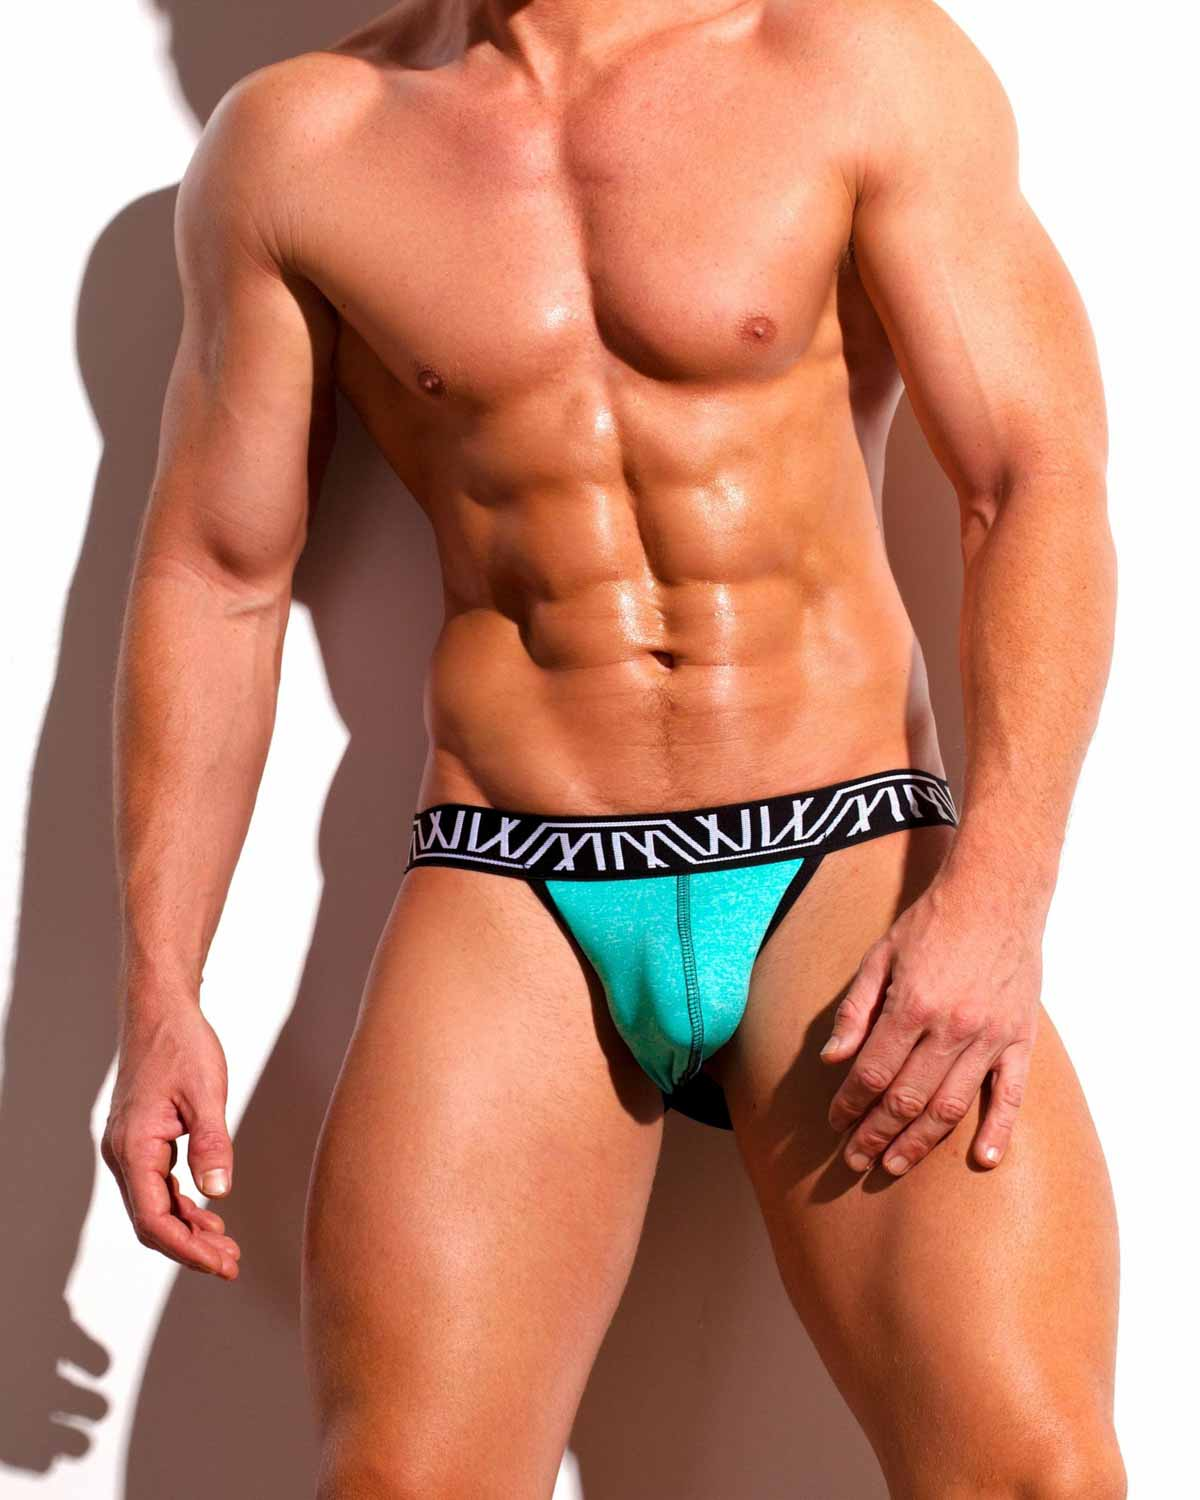 Male underwear model wearing Marco Marco Men's Underwear Jockstrap available at MensUnderwear.io